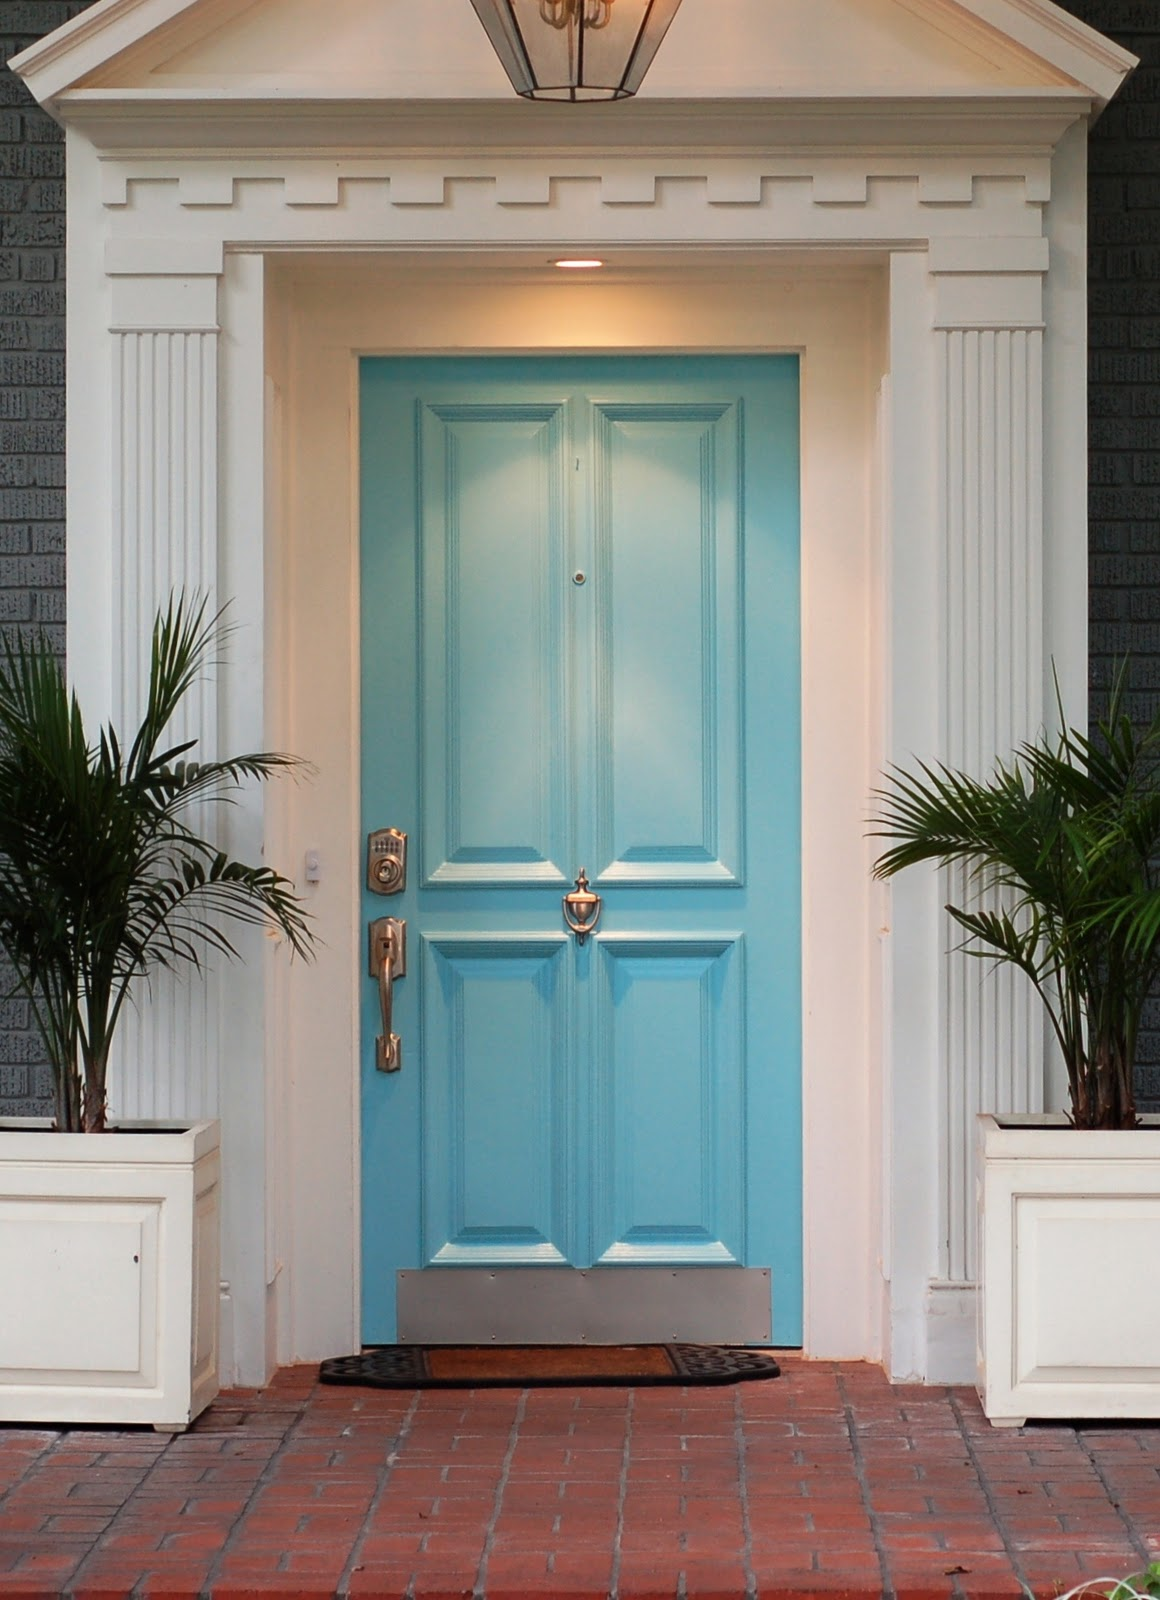 north dallas real estate: front door colors to help sell your home